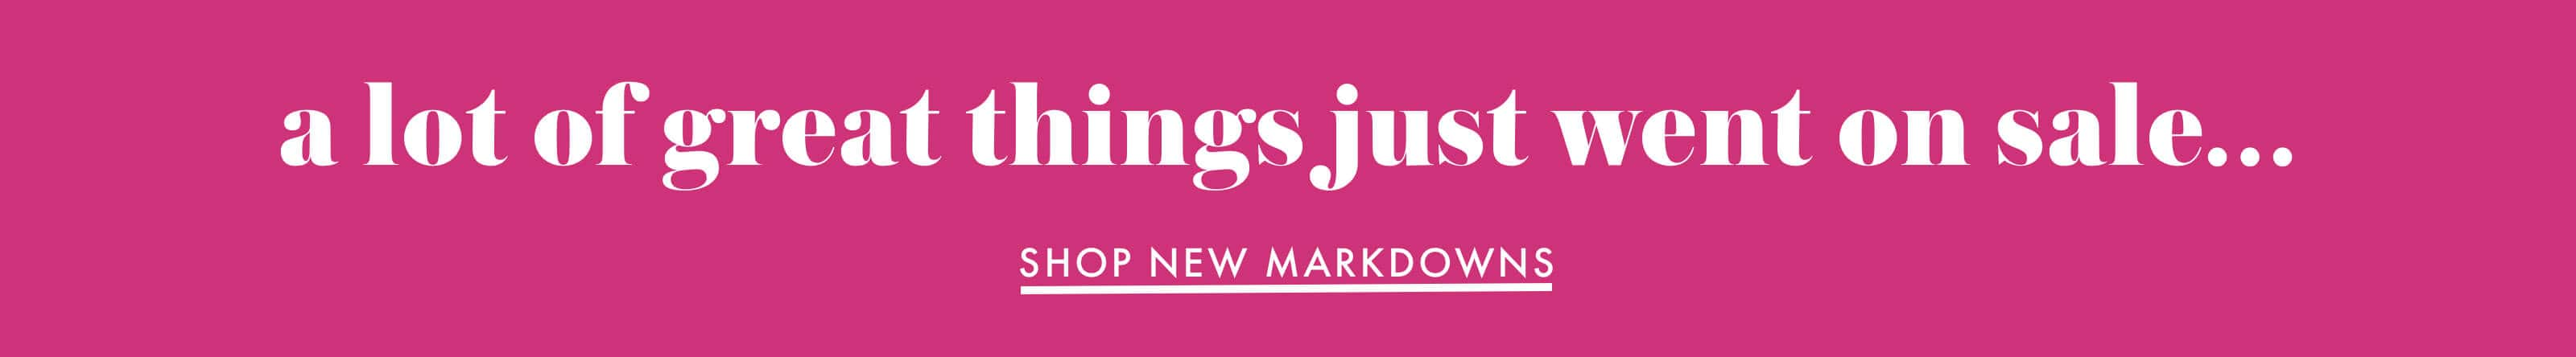 a lot of great things just went on sale... shop new markdowns